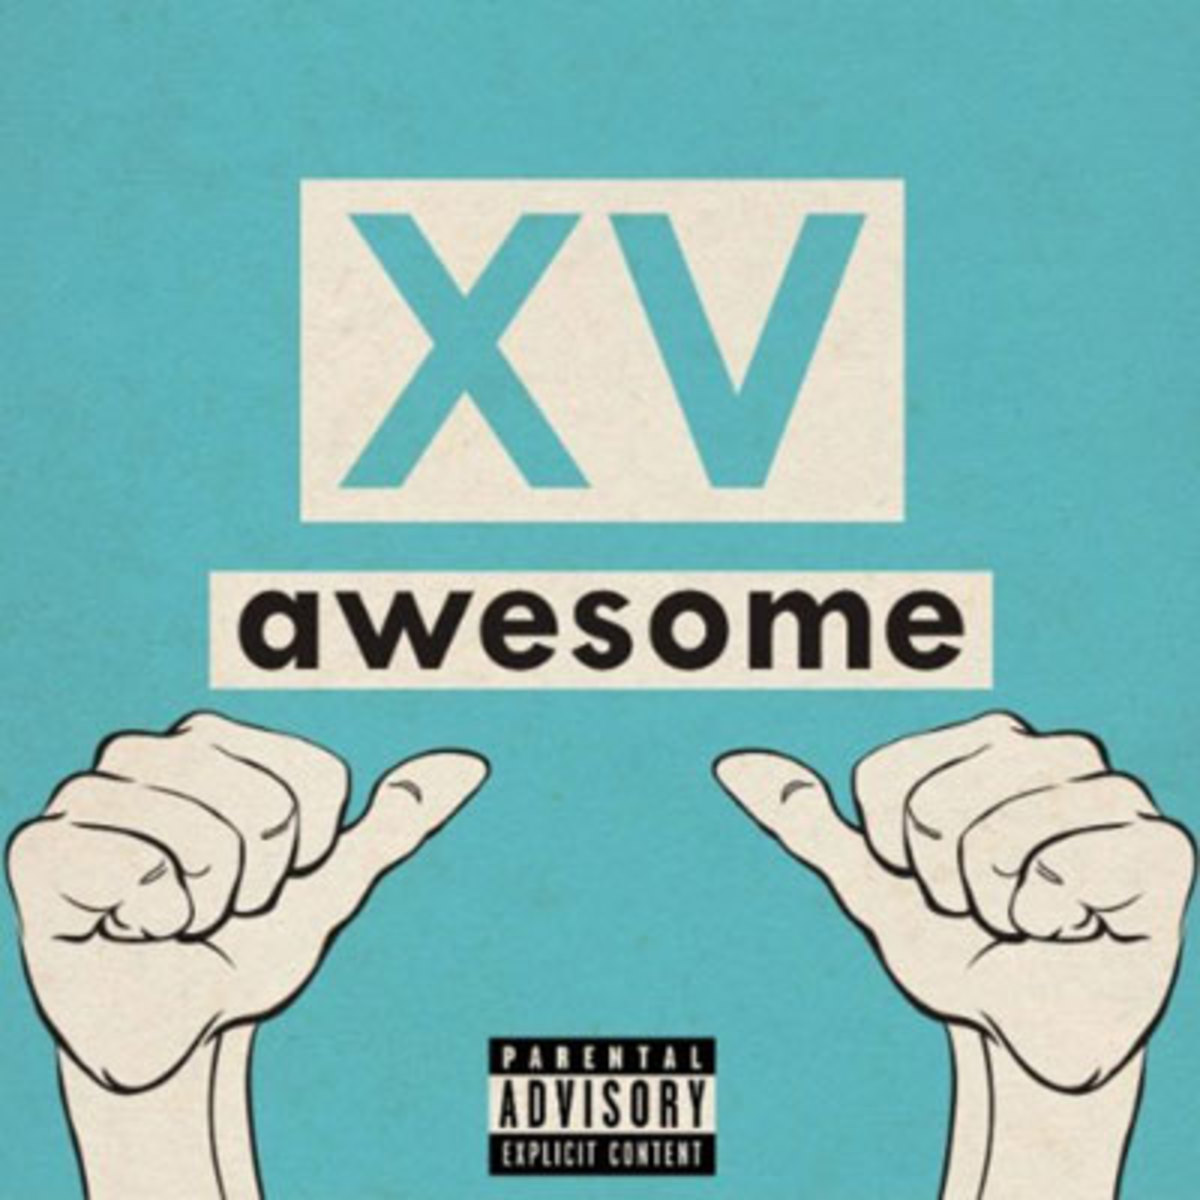 xv-awesome.jpg